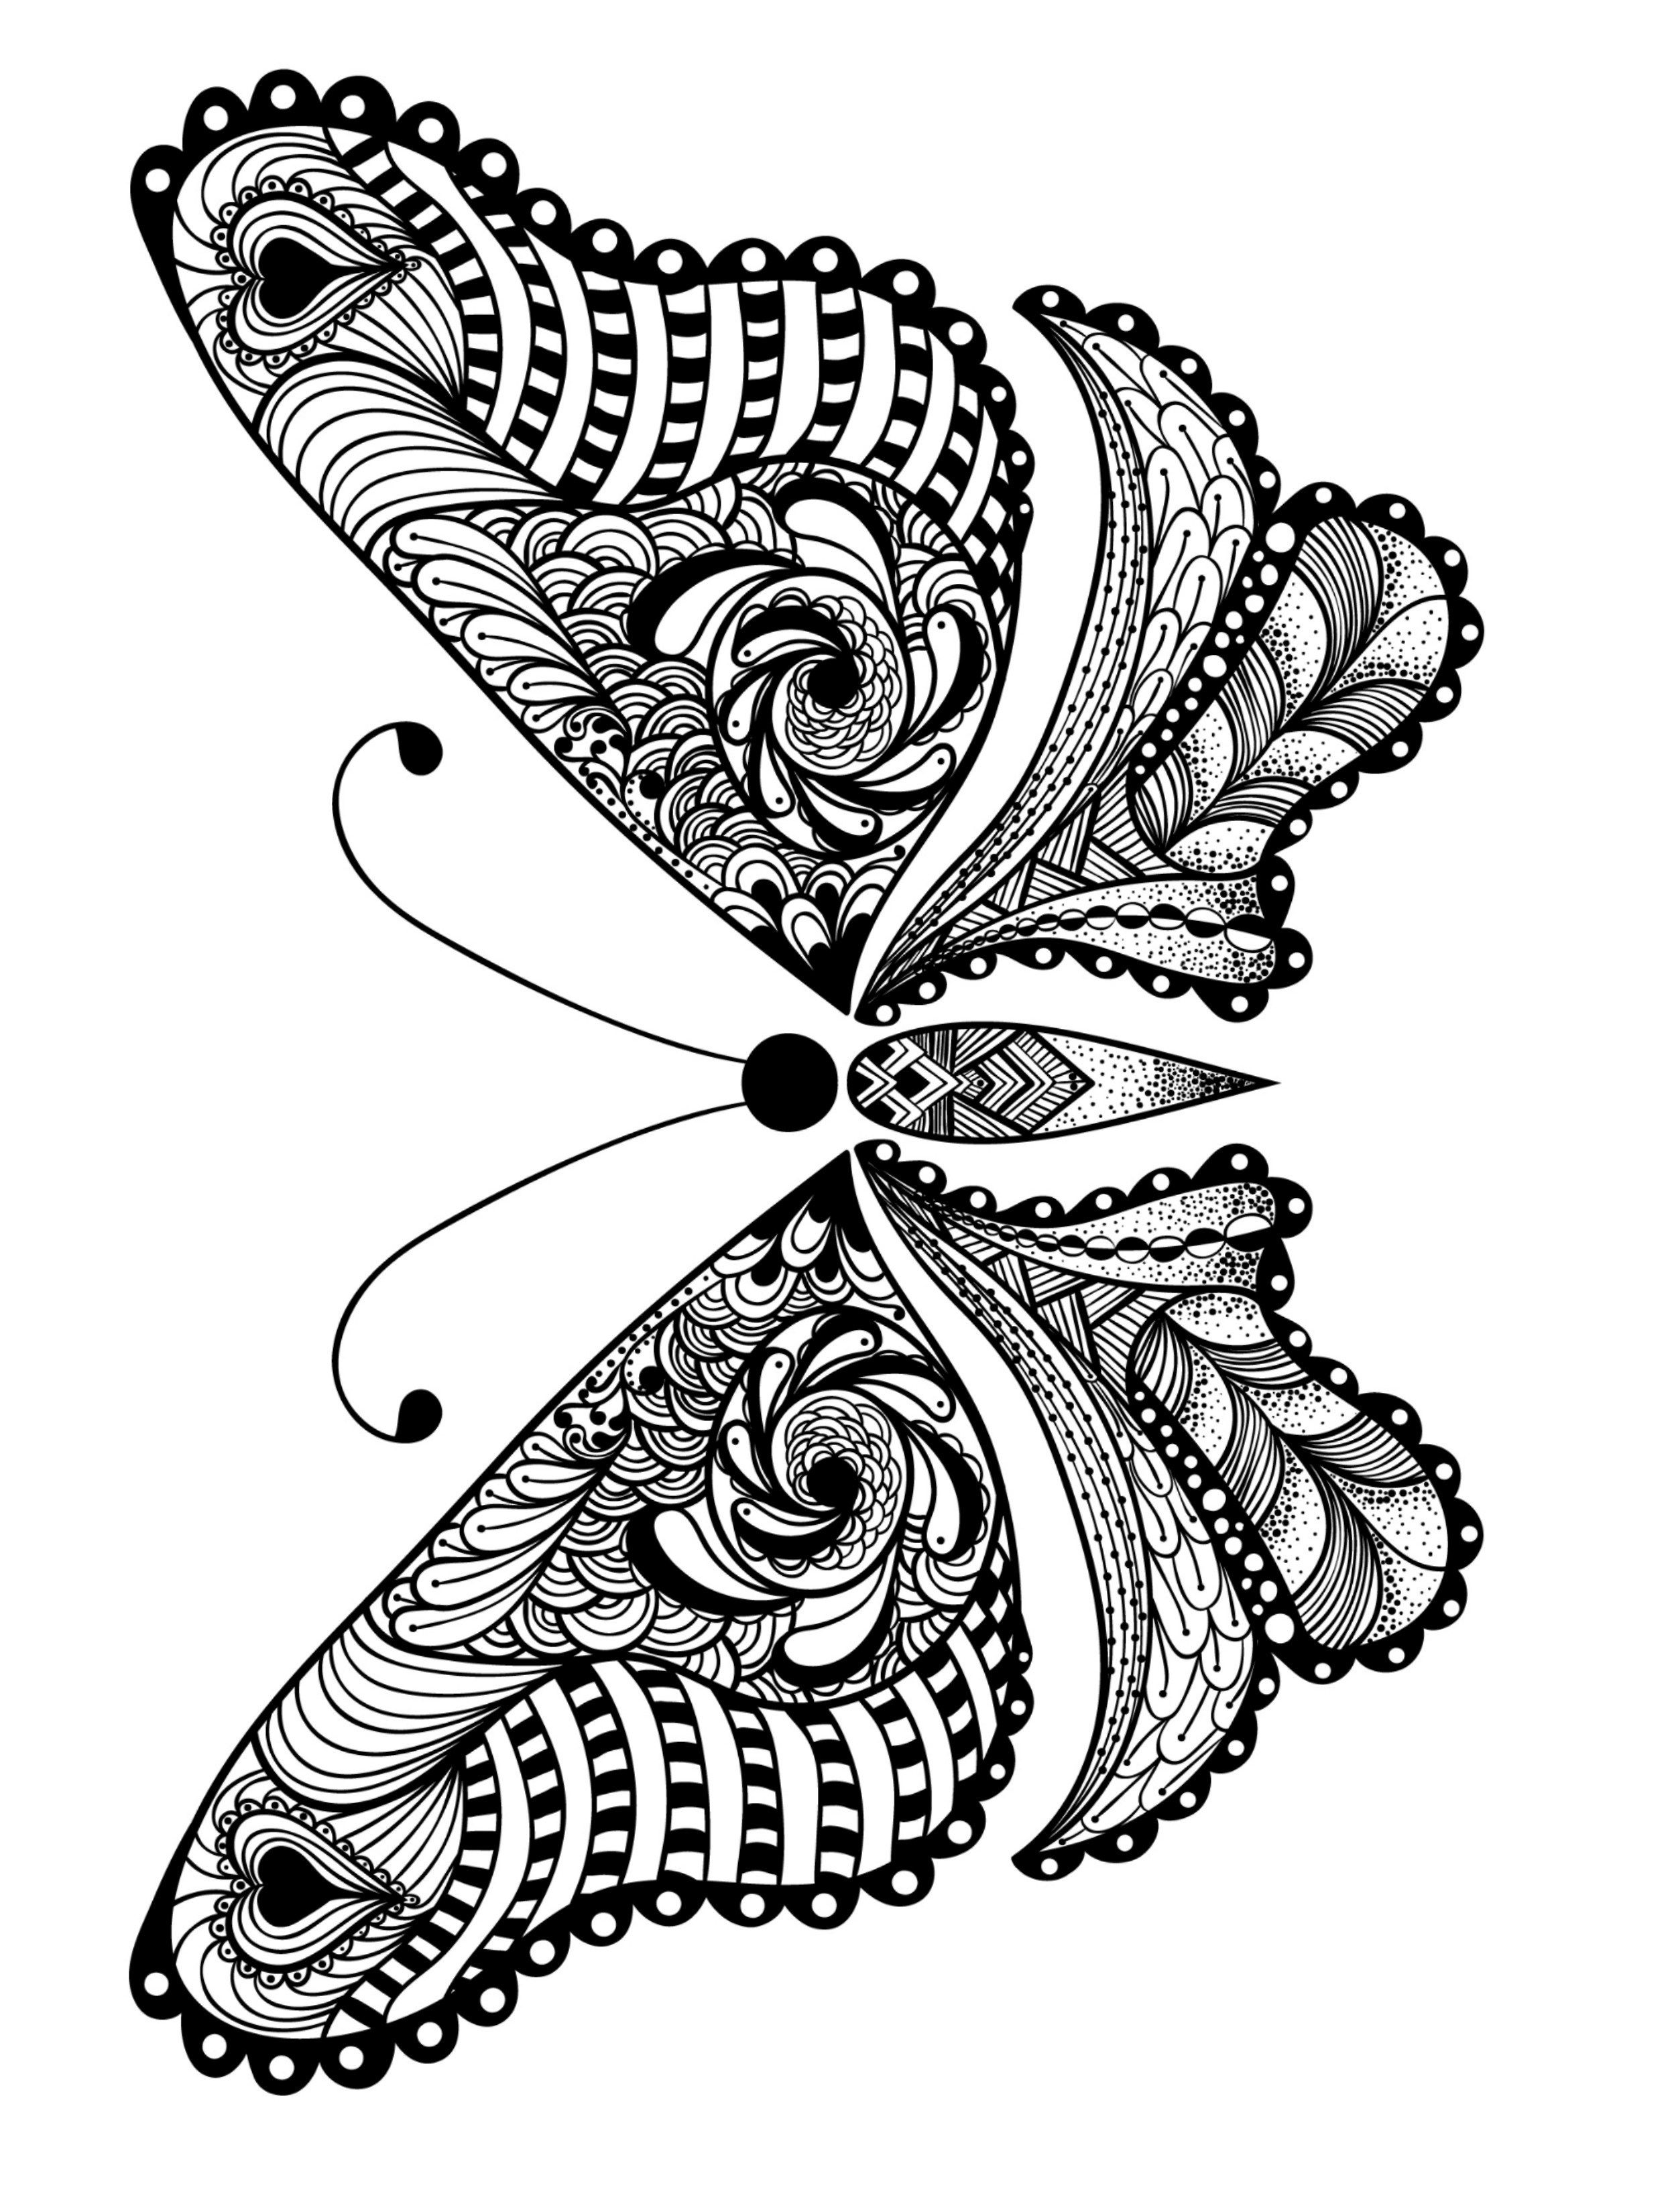 23 free printable insect & animal adult coloring pages | zentangles